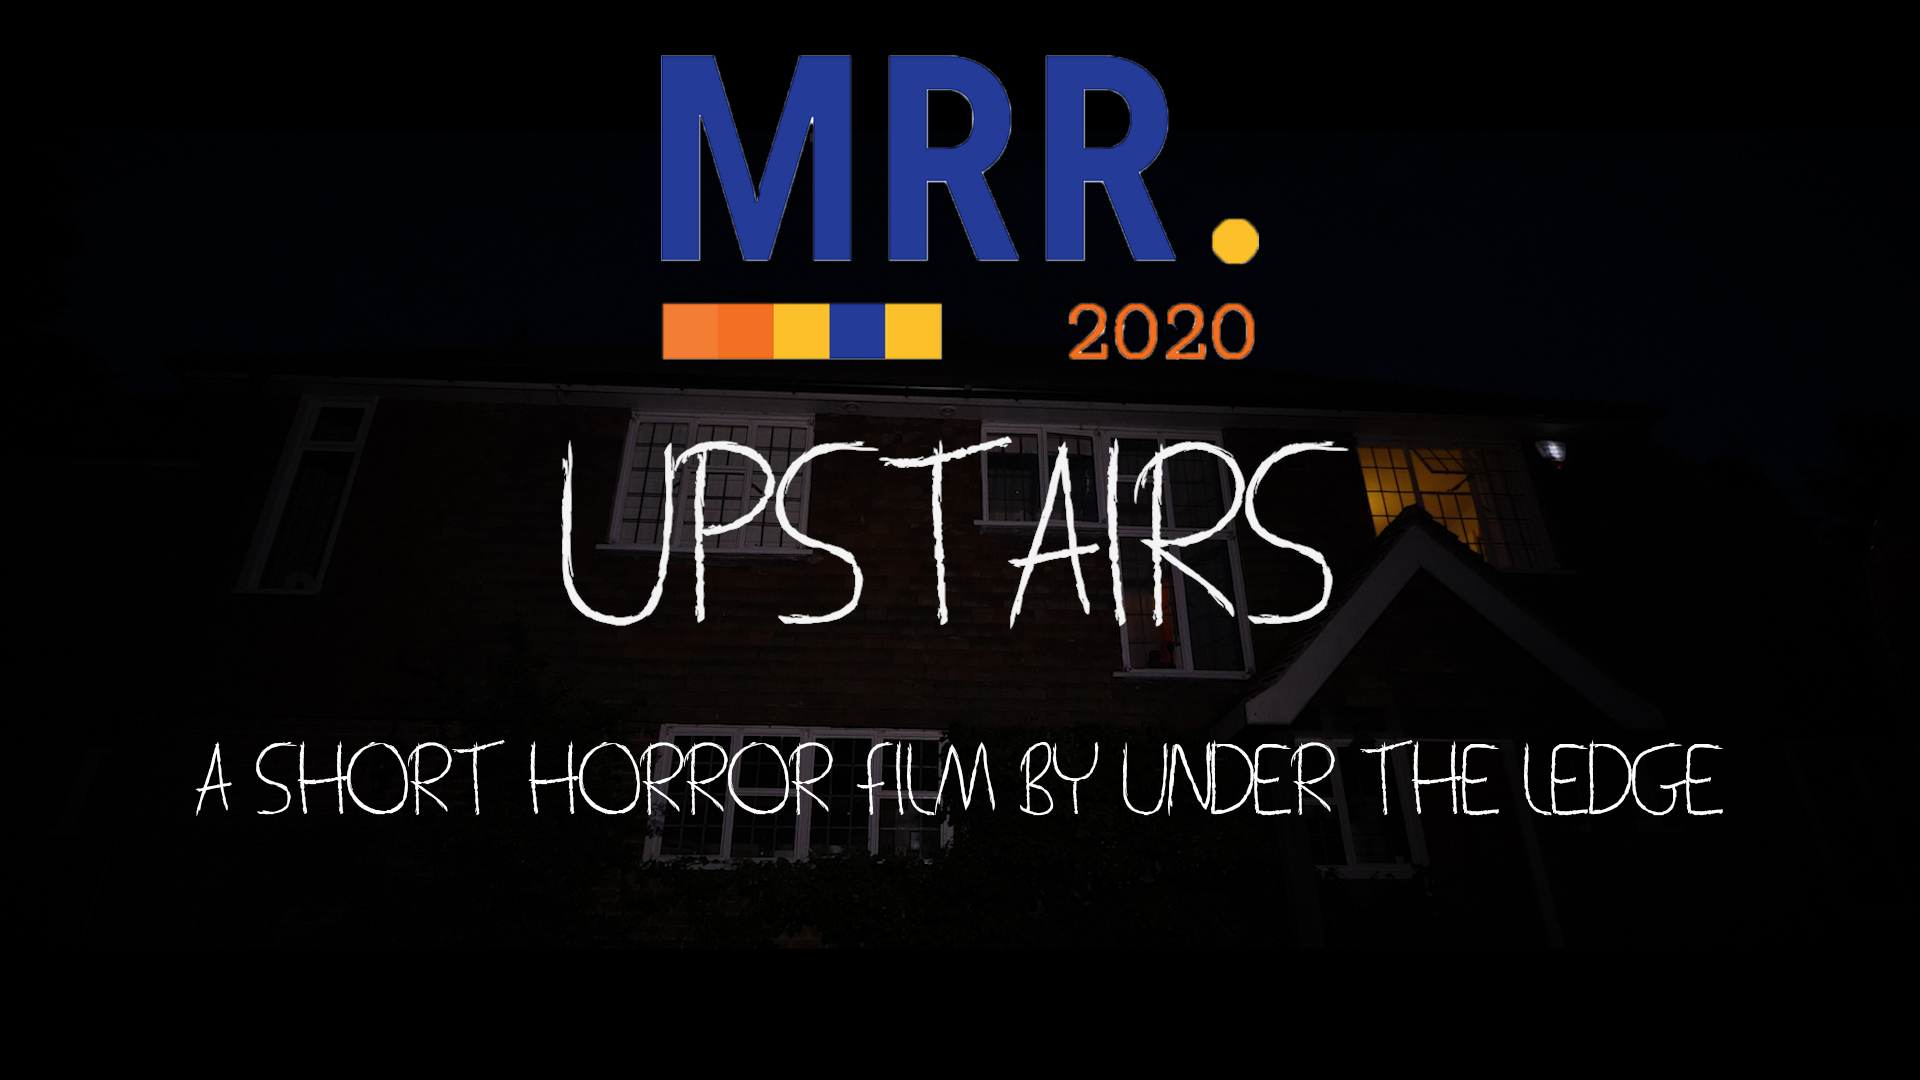 Upstairs - A short horror film | Under The Ledge